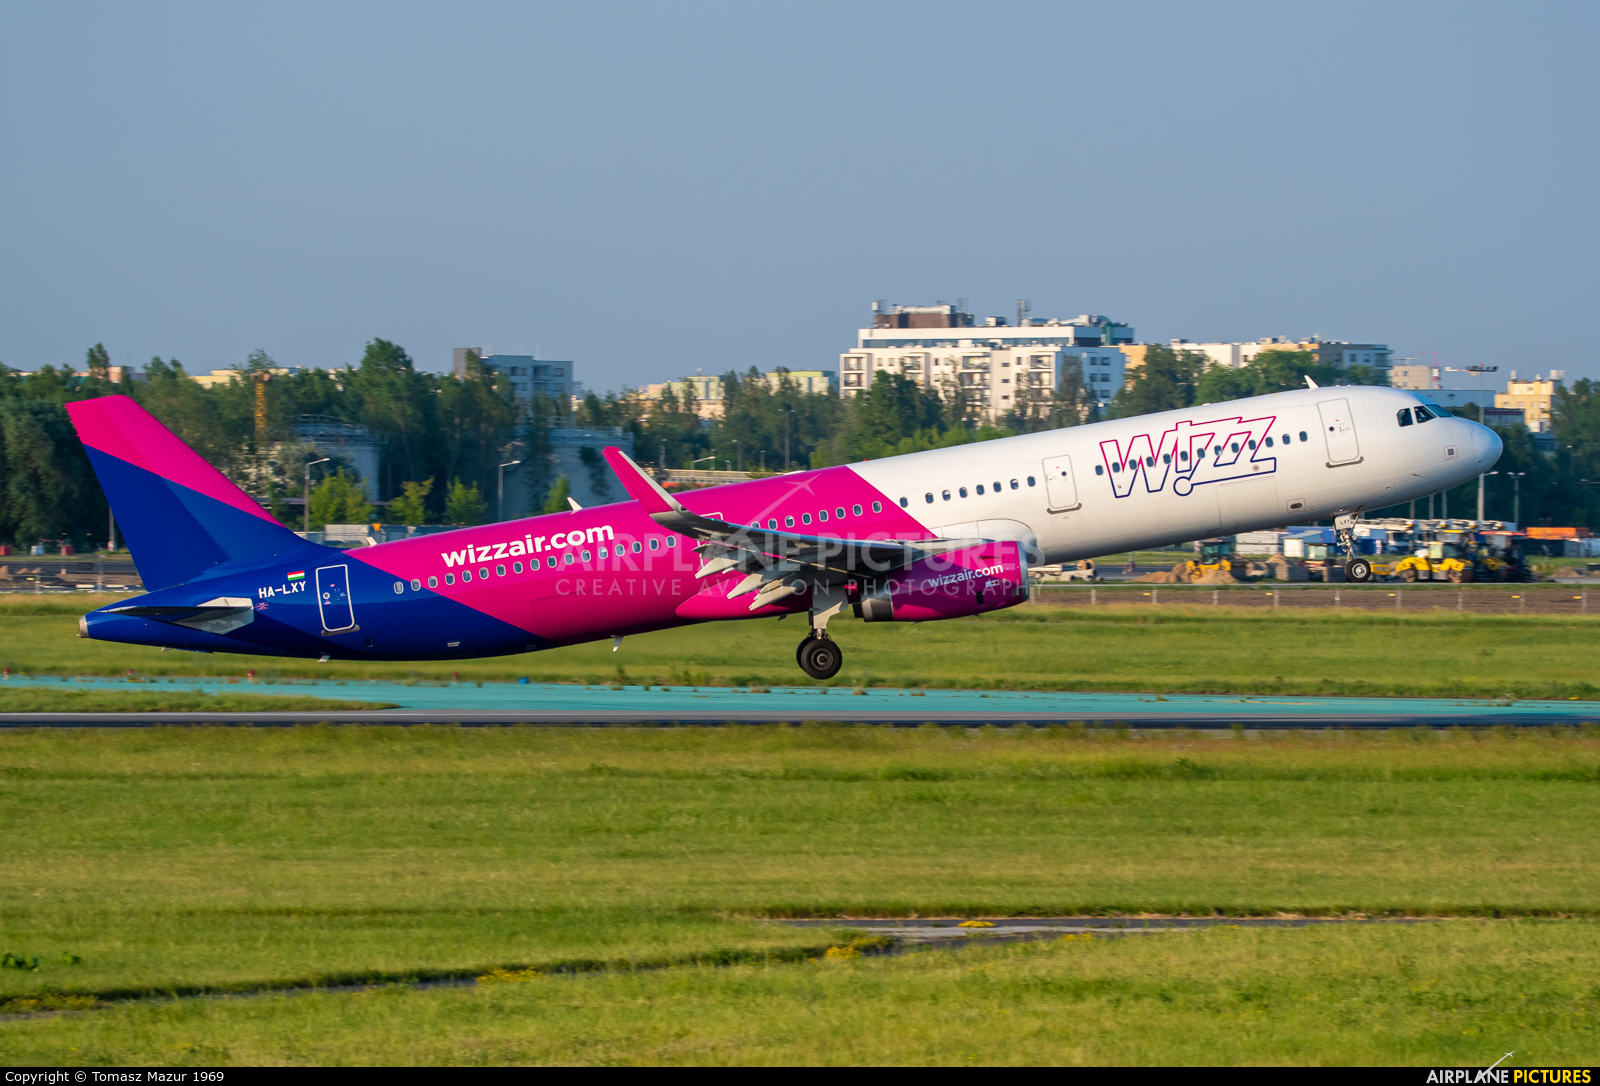 Wizz Air HA-LXT aircraft at Warsaw - Frederic Chopin